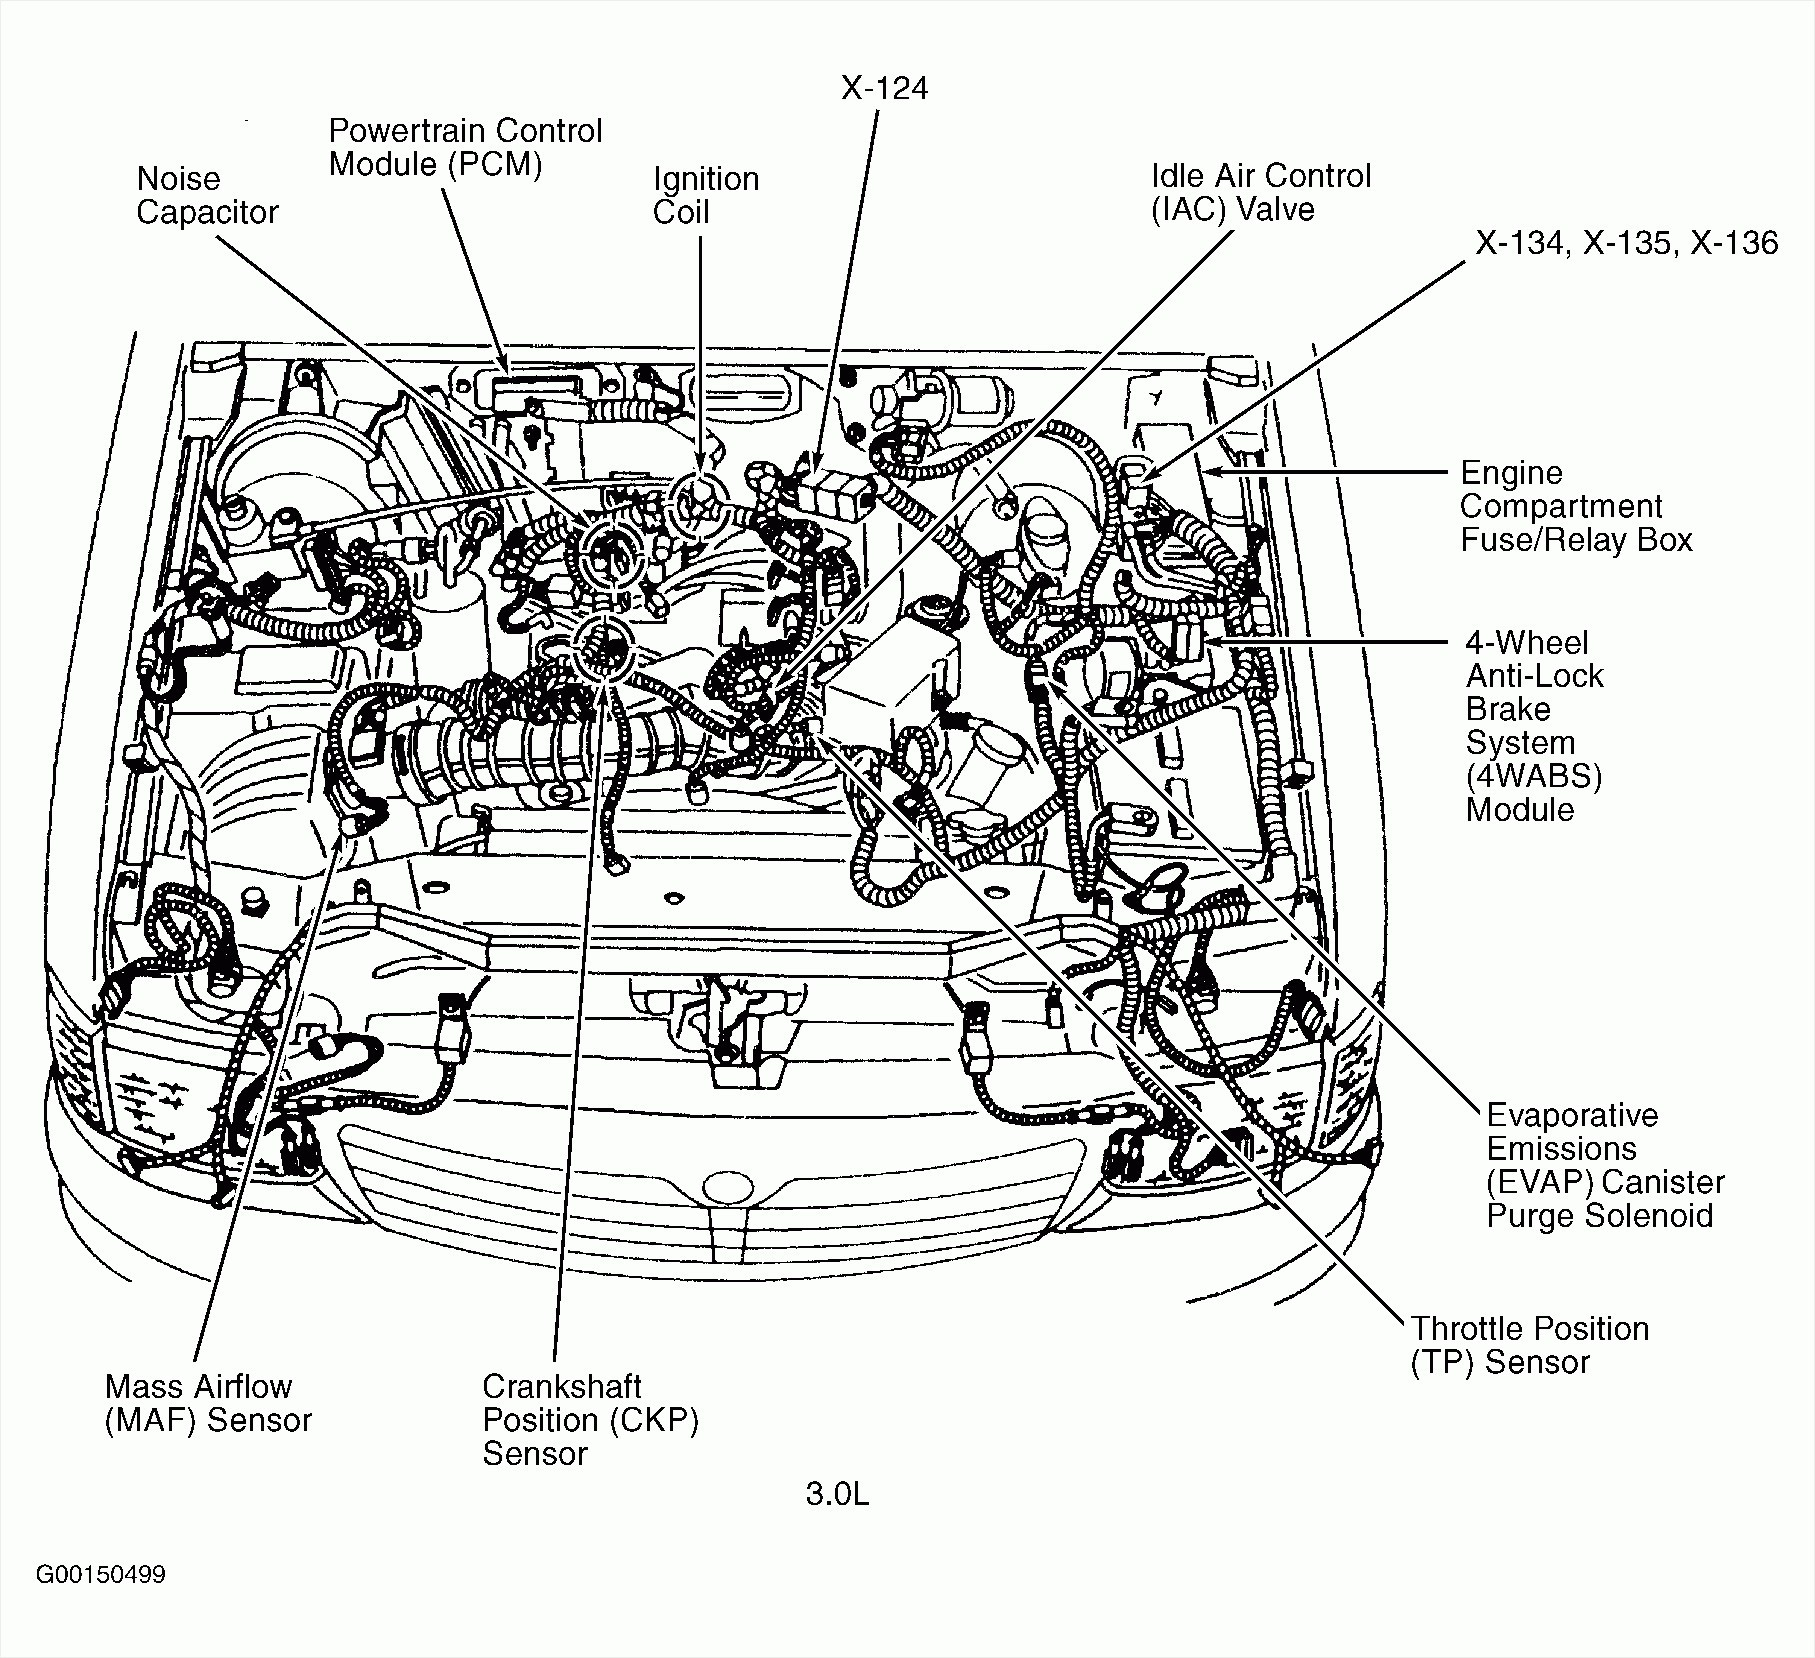 Frontier V6 Engine Diagram Guide And Troubleshooting Of Wiring 01 Throttle Body Schematic Nissan Detailed Rh 16 4 Ocotillo Paysage Com 2001 Engines With Names